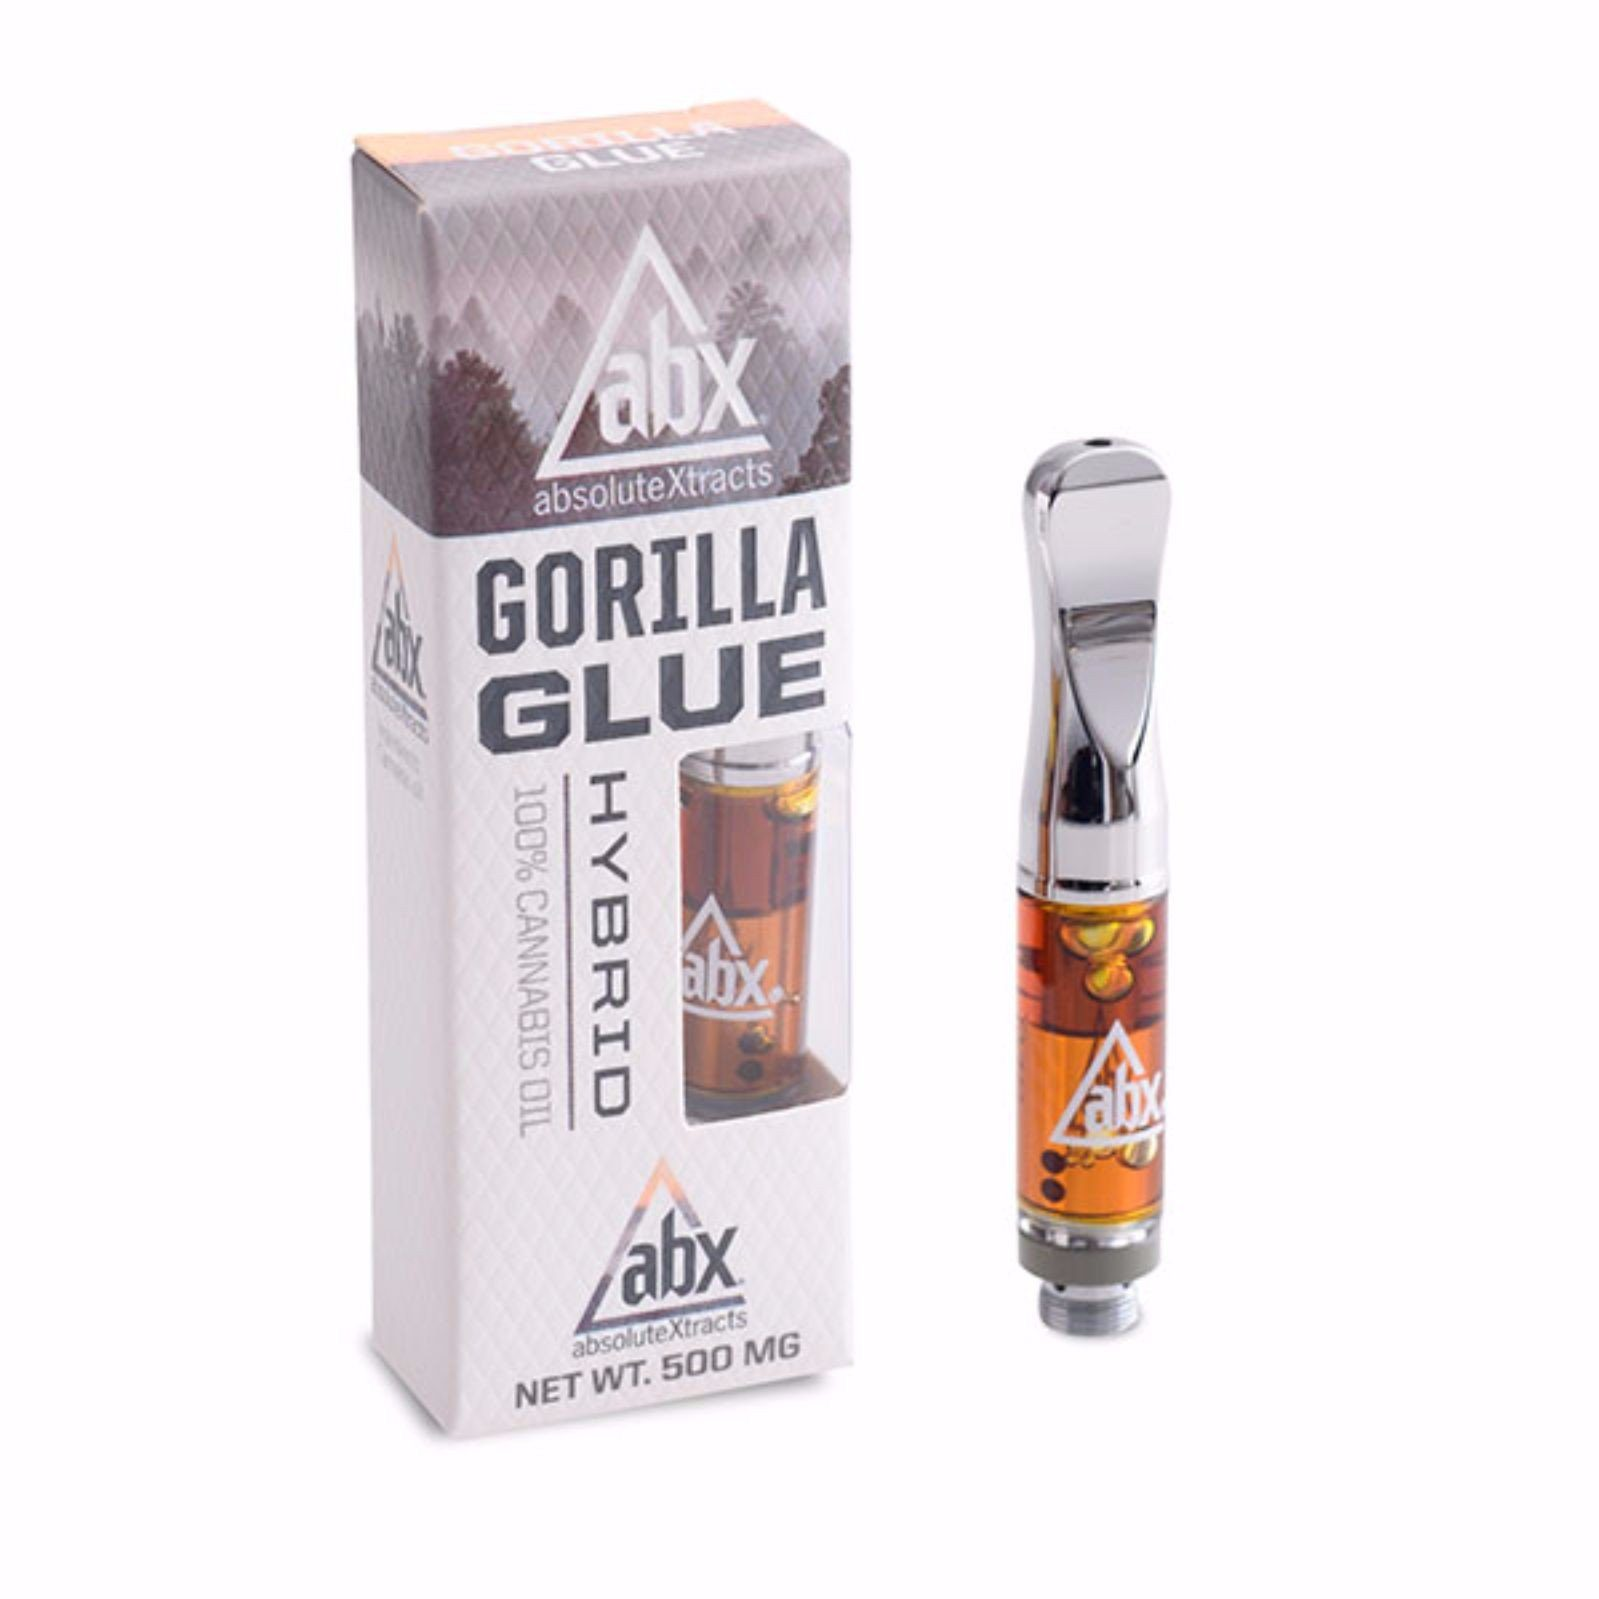 Gorilla Glue 4 Vape Cartridges is best for insomnia